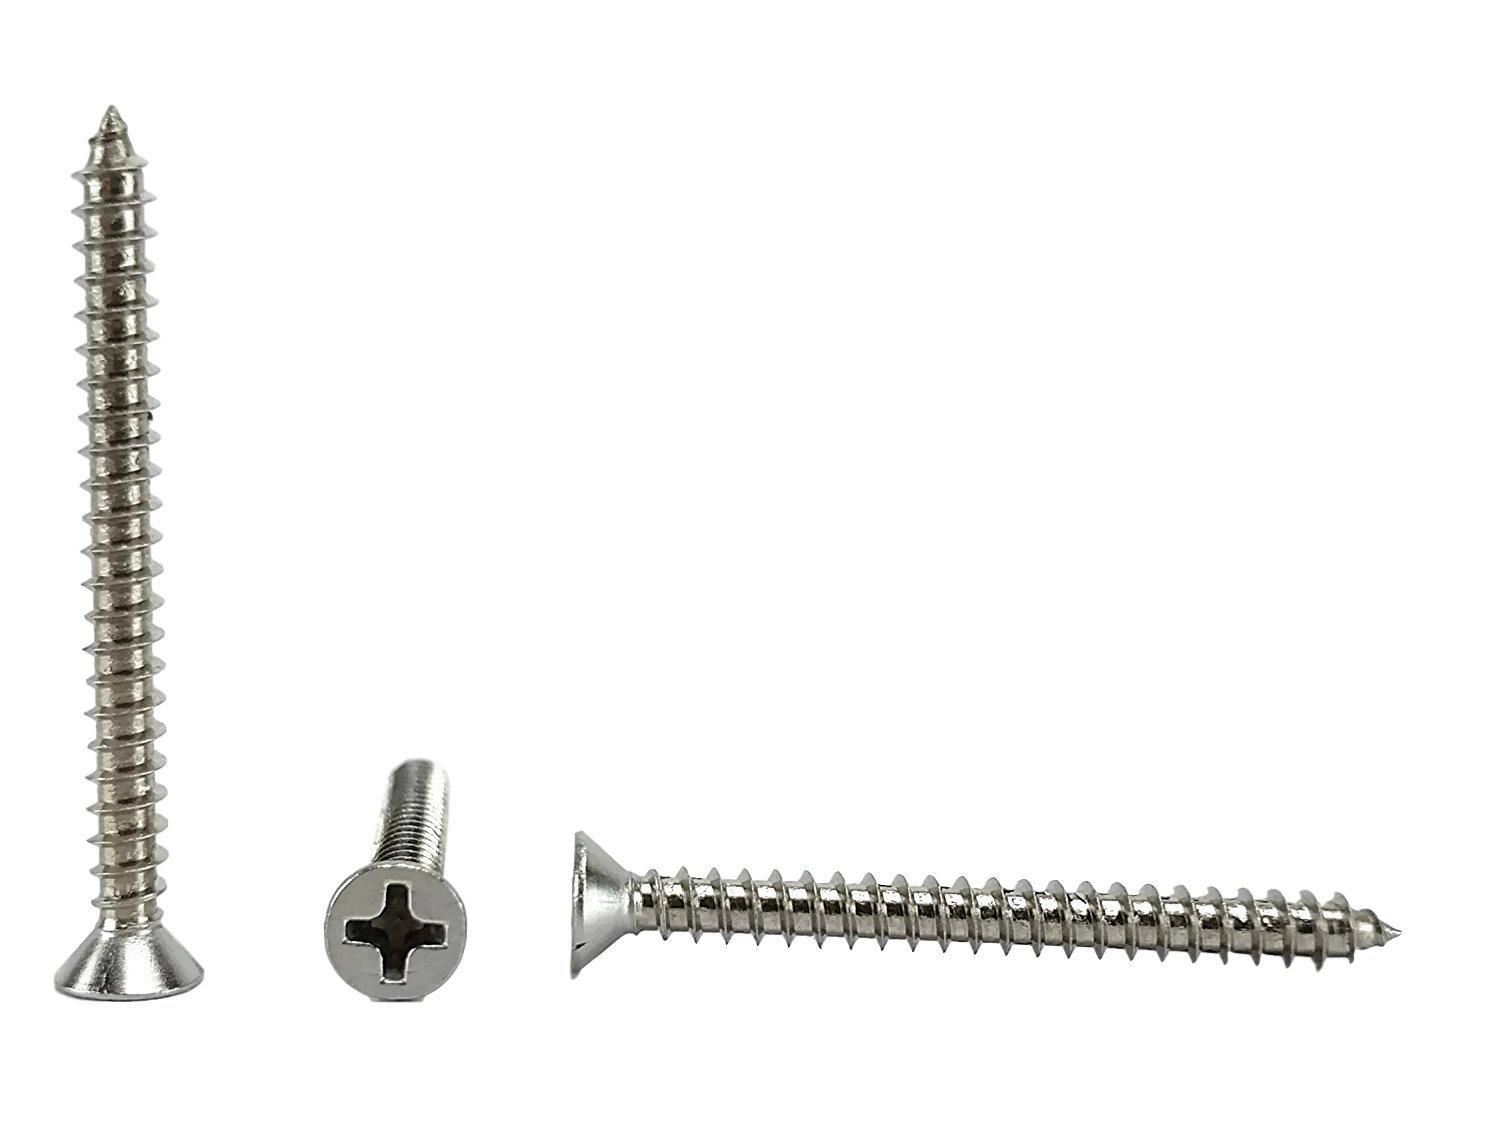 #6 X 1-1/2'' Stainless Phillips Flat Head Sheetmetal Screw (3/8'' to 2'' in Listing) 100 Sheet Metal Screws, 82 Degrees (#6 x 1-1/2)